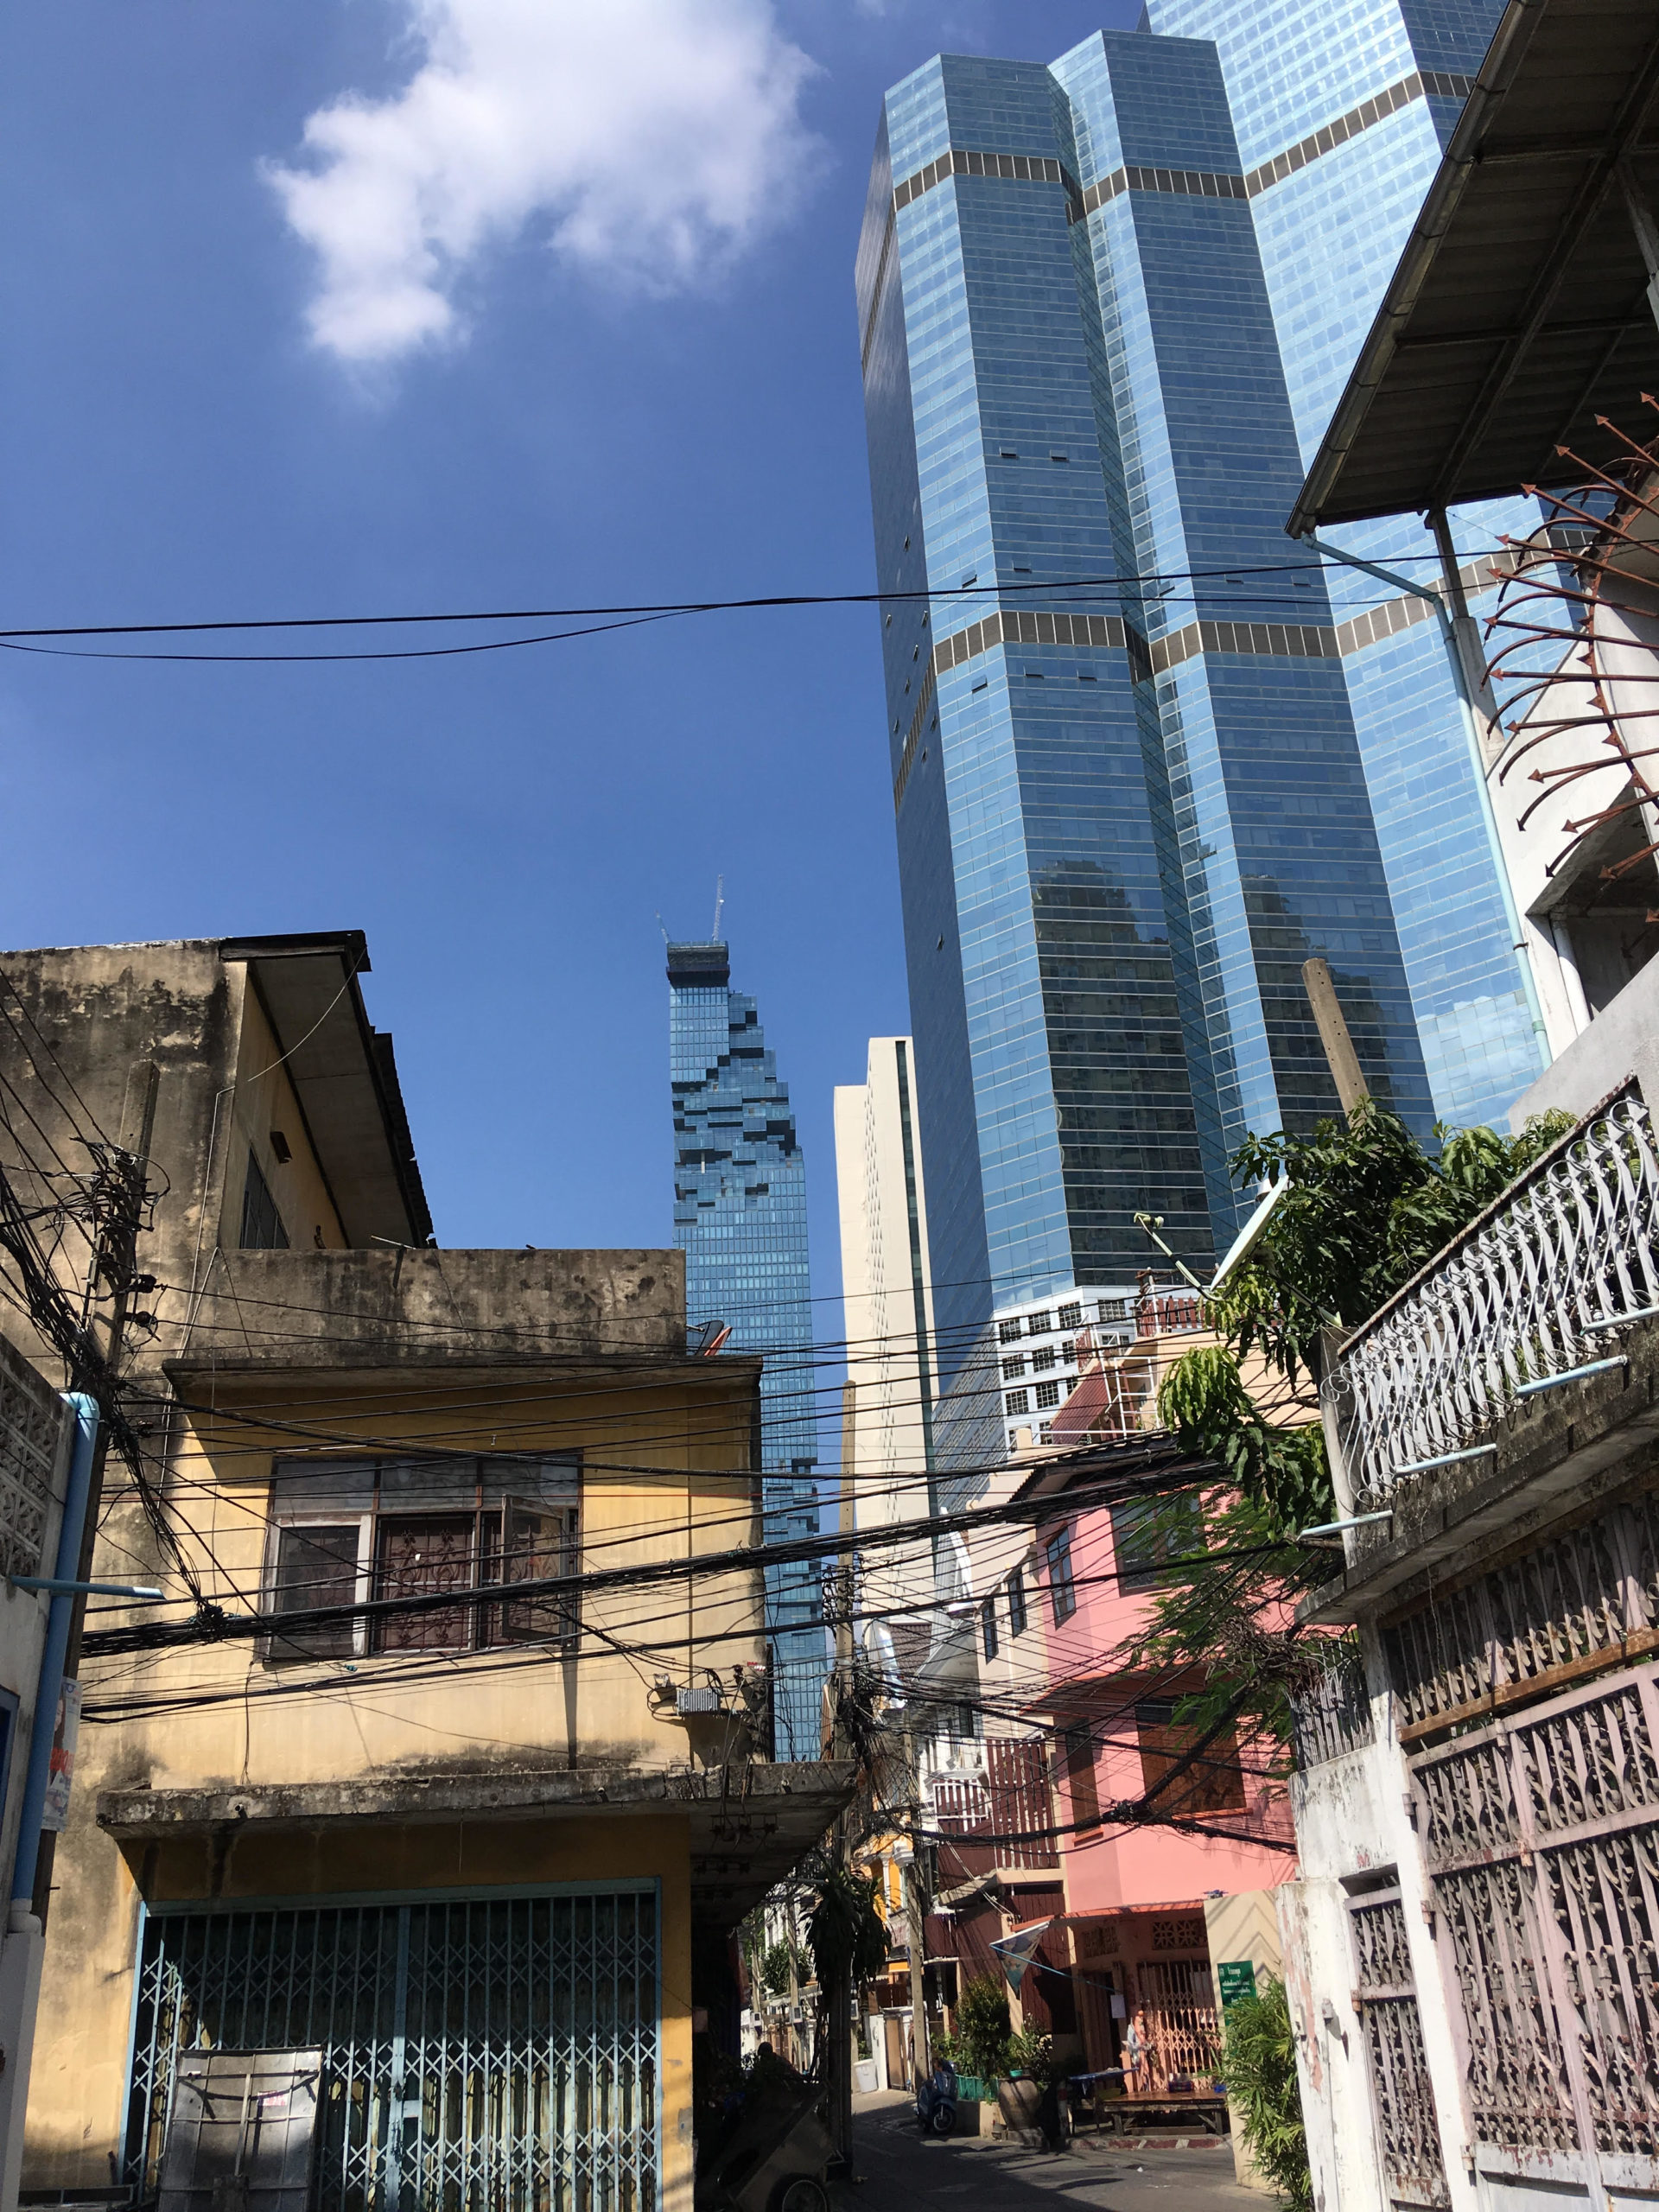 Bangkok's_tallest_skyscraper_(in_background)_-_12-07-17.jpeg